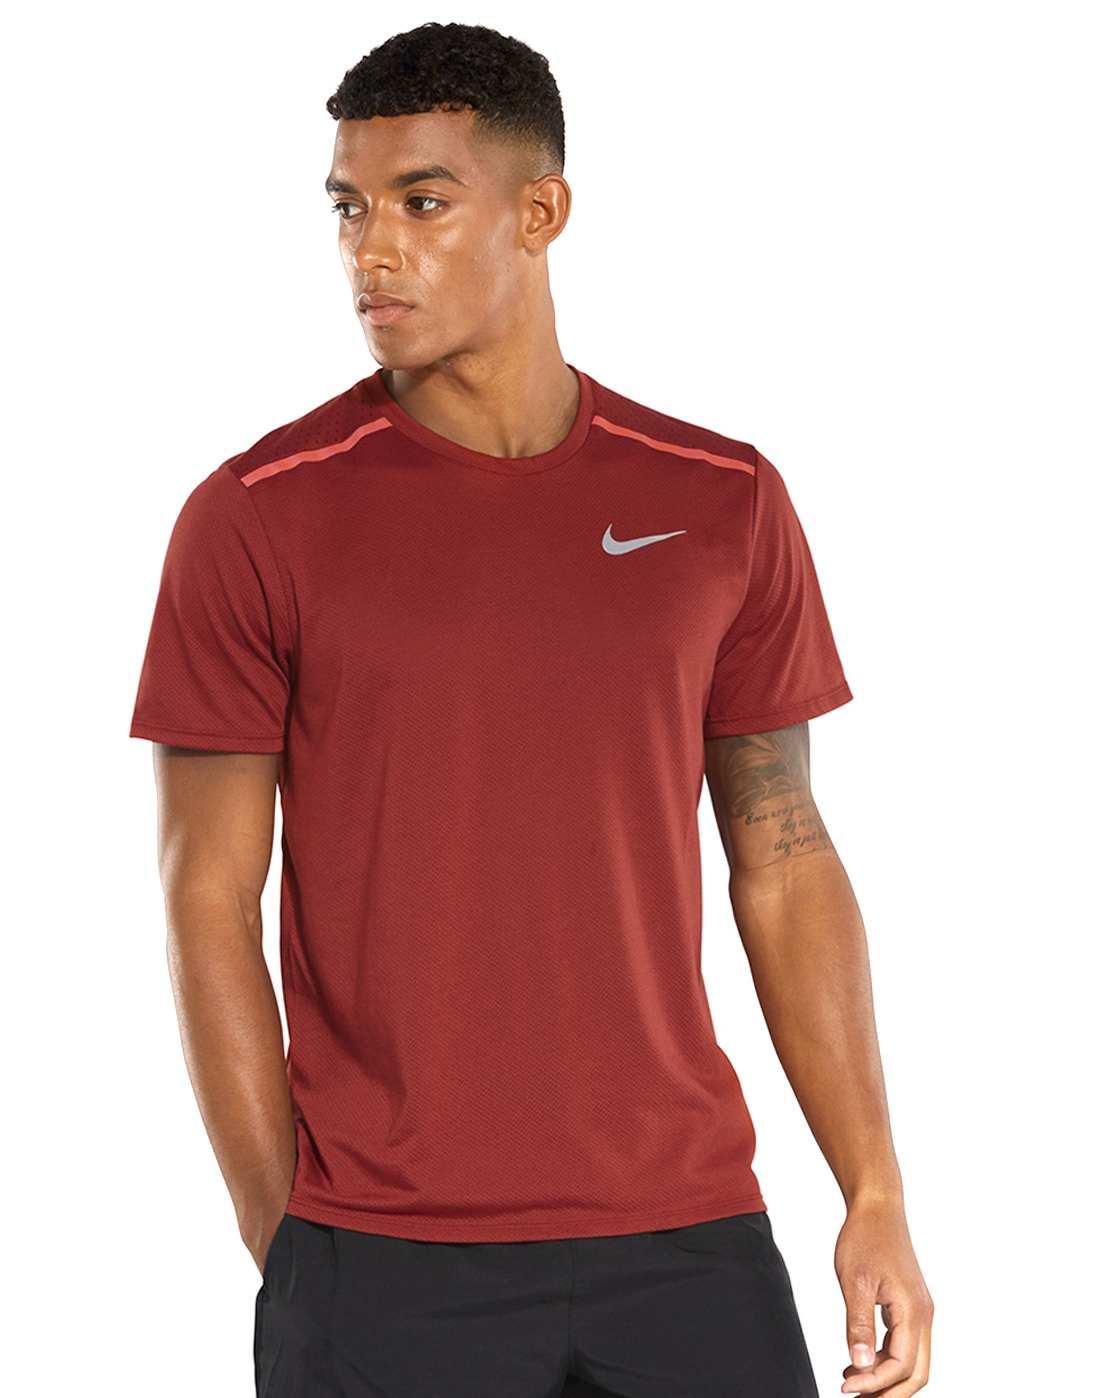 4a8ab358a Men's Red Nike Breathe Rise 365 T-Shirt | Life Style Sports